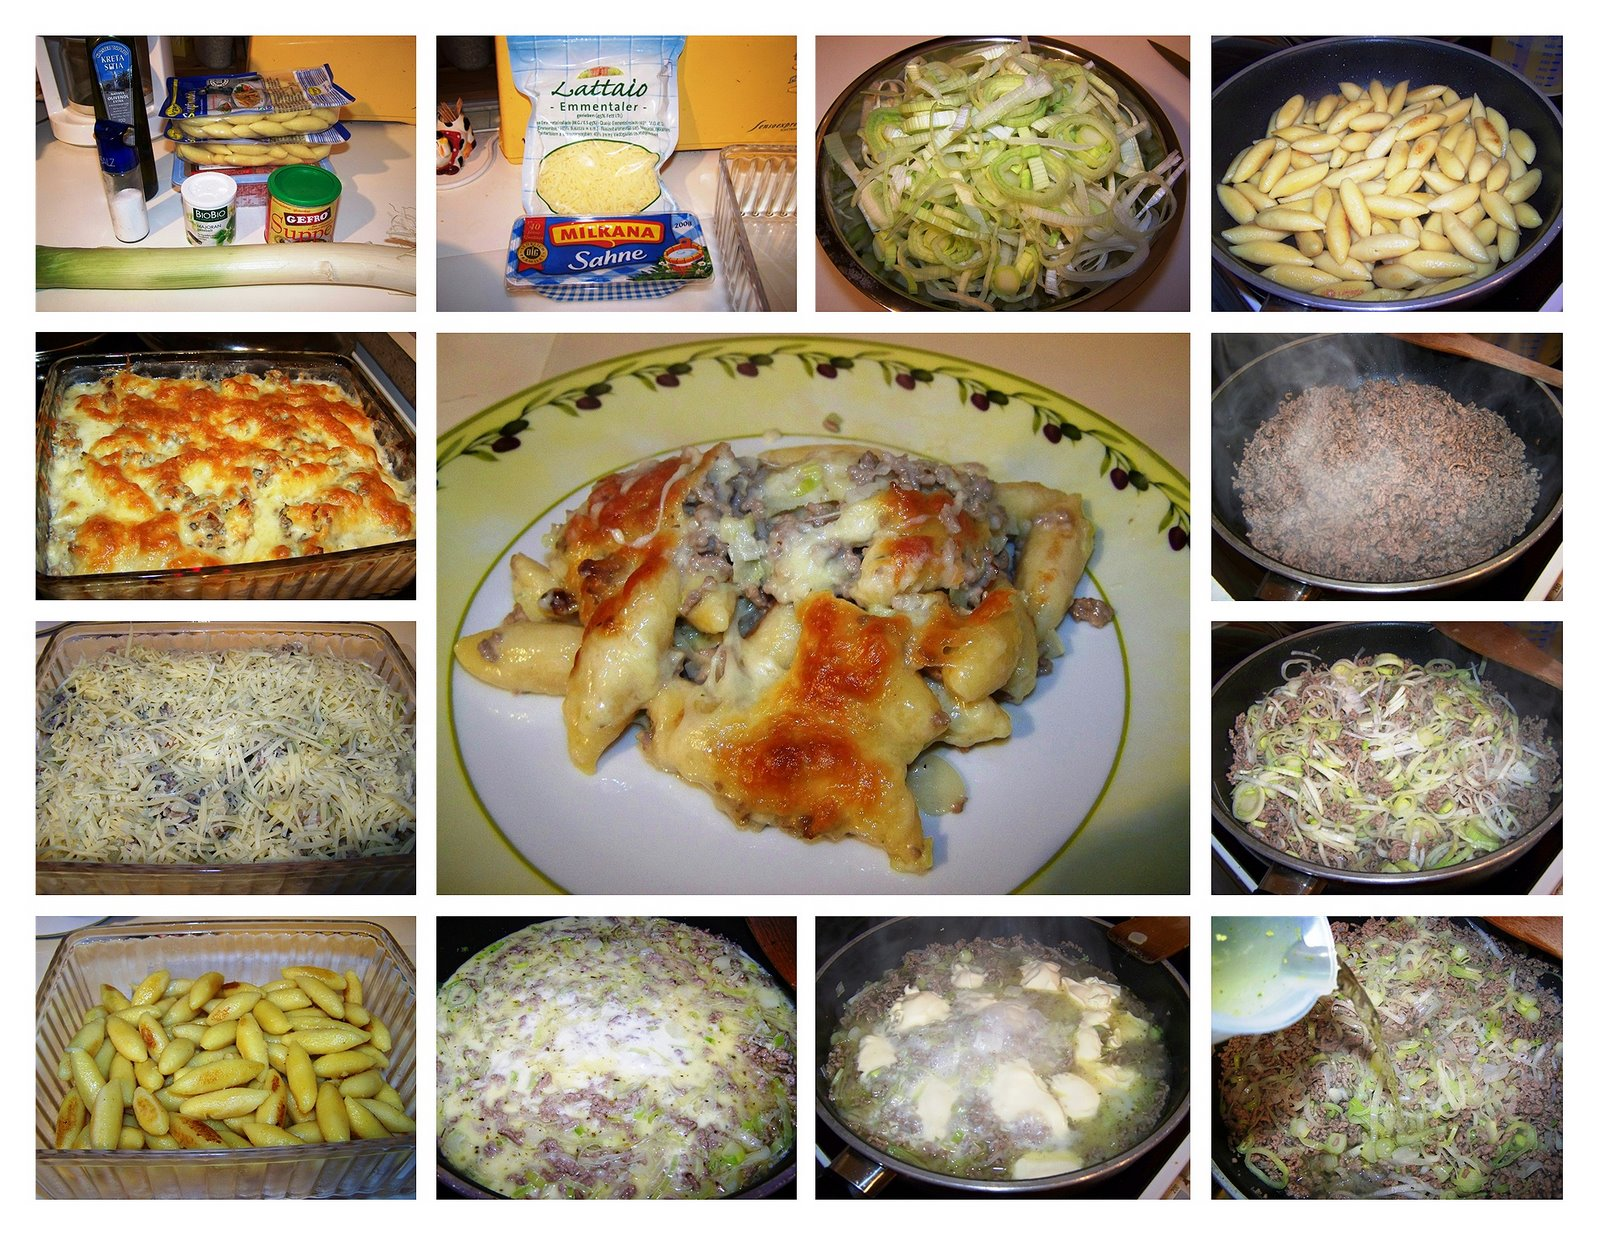 [Schupfnudeln+with+leek,+ground+meet+and+browned+cheese_Page000.jpg]